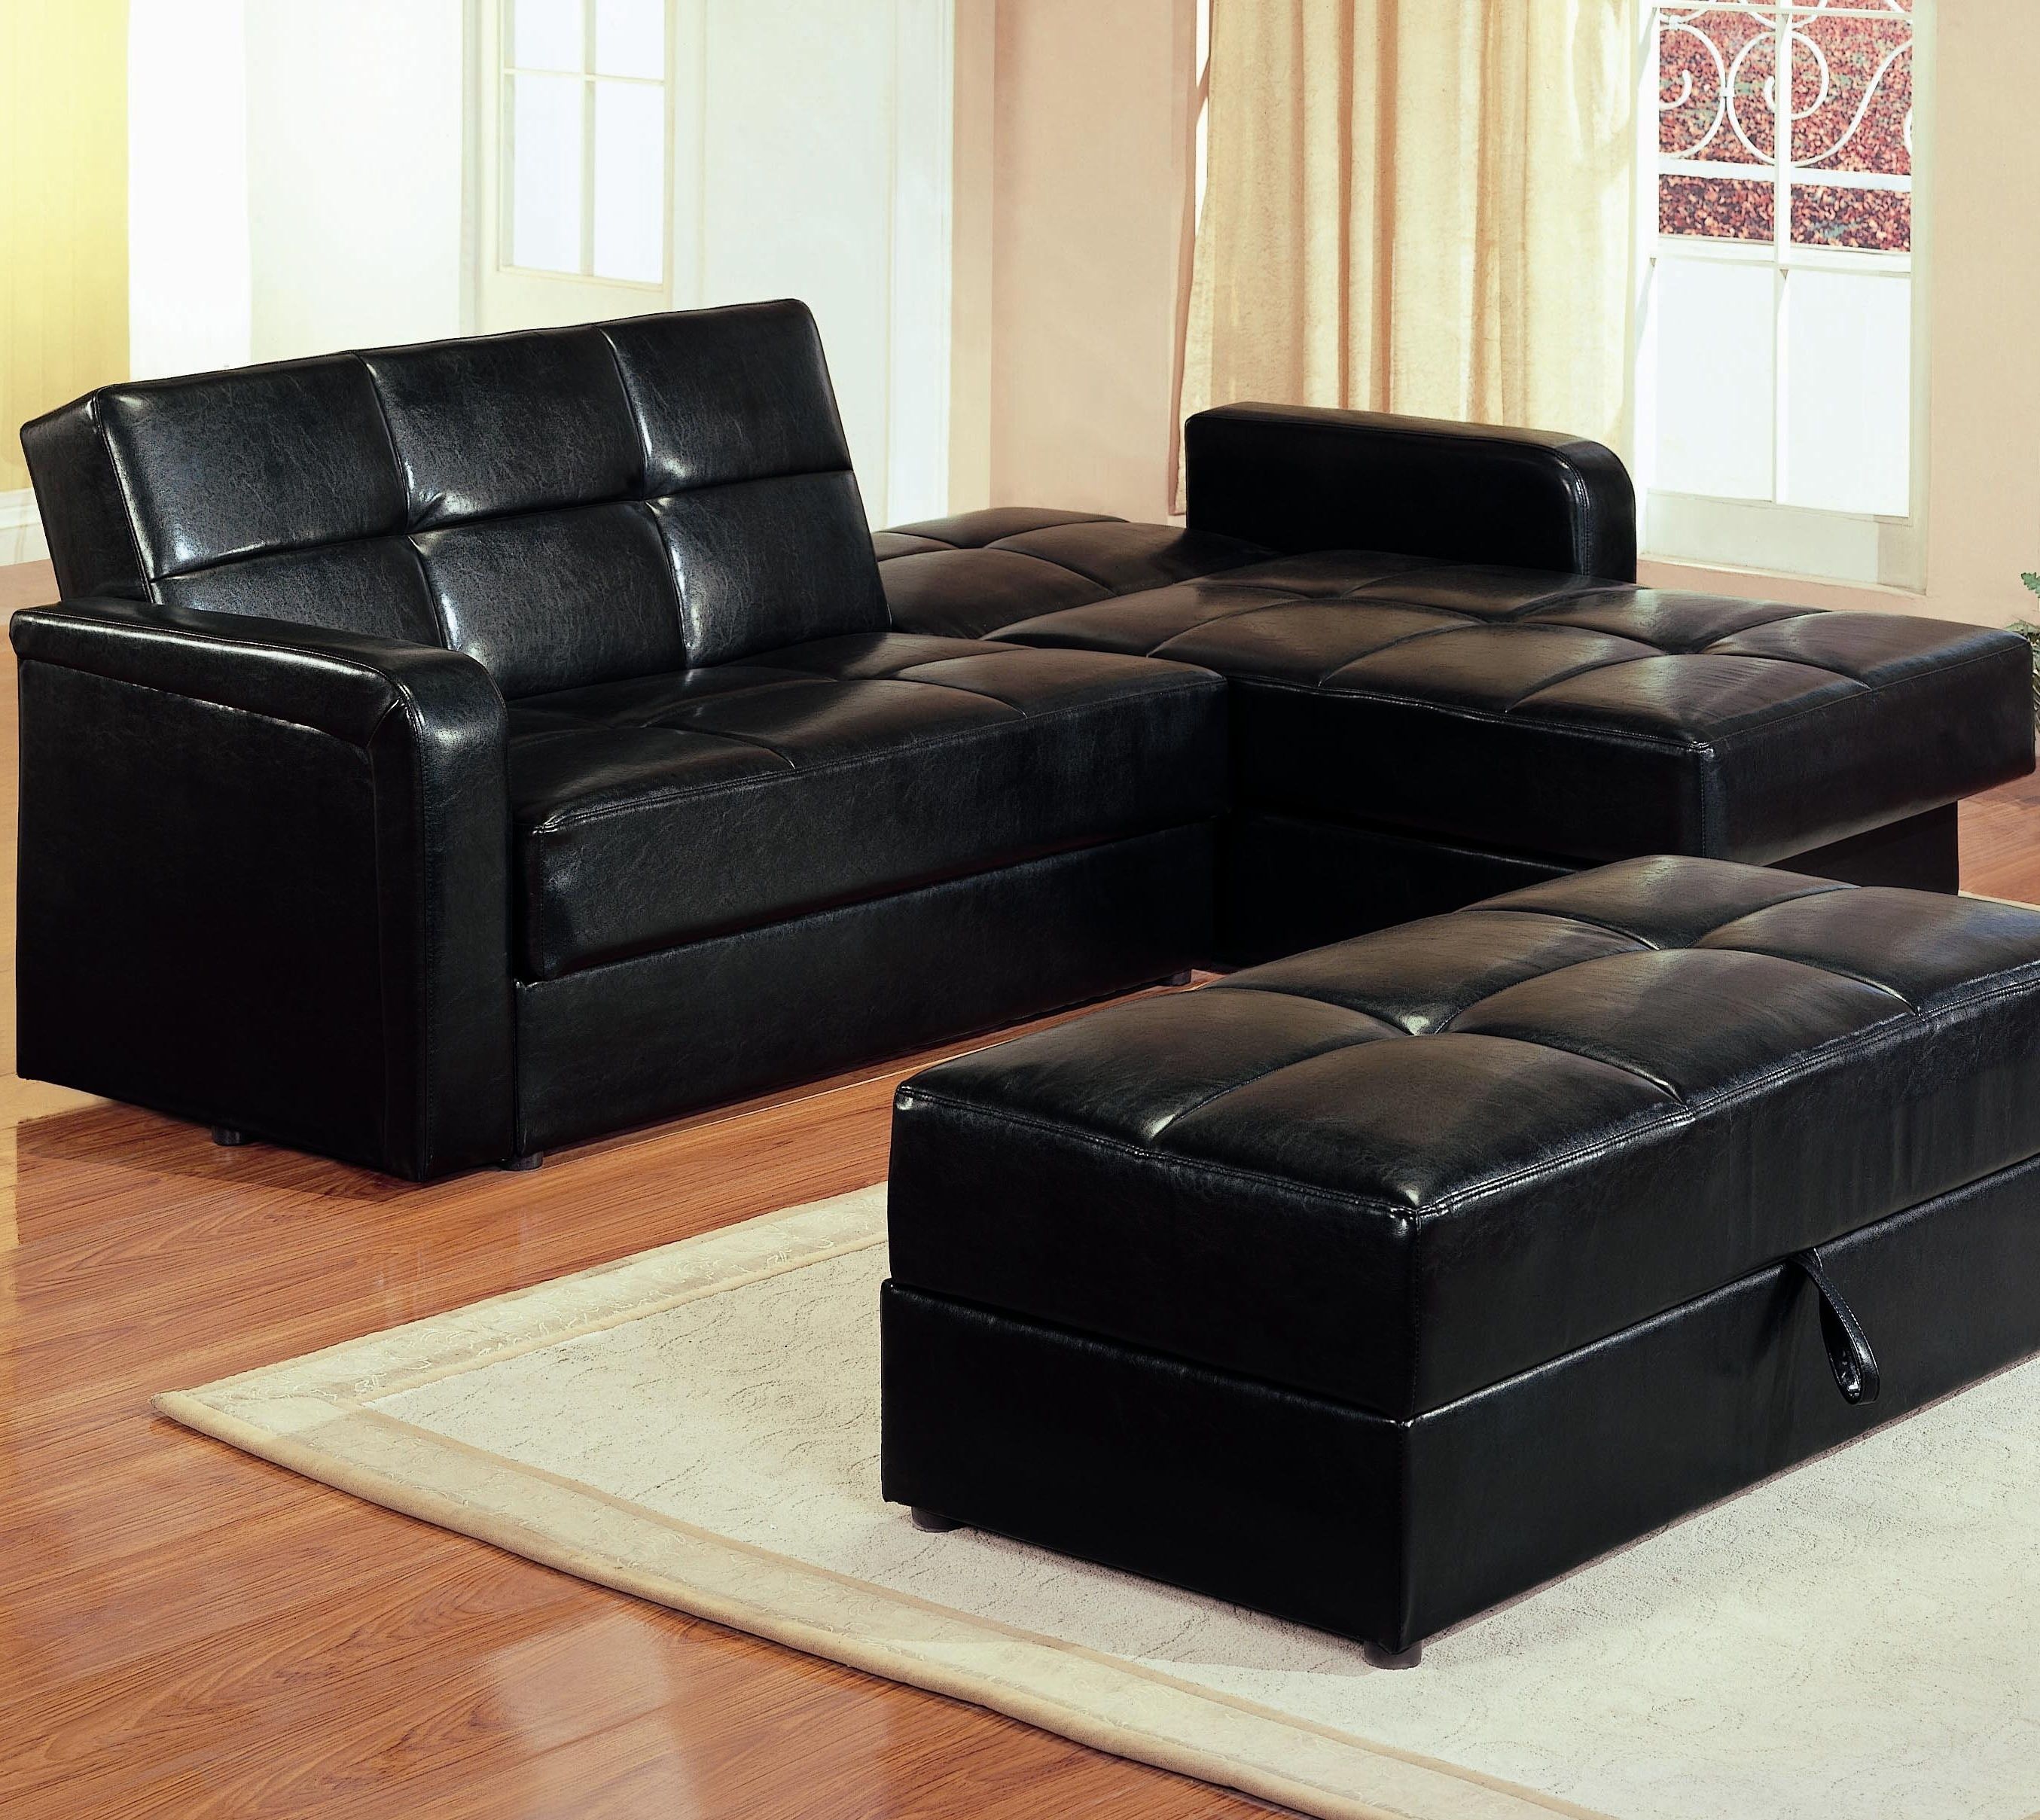 Recent Leather Sofas With Storage With Regard To Ikea Sleeper Sectional Couch With Storage And Bed Click Clack Sofa (View 12 of 15)